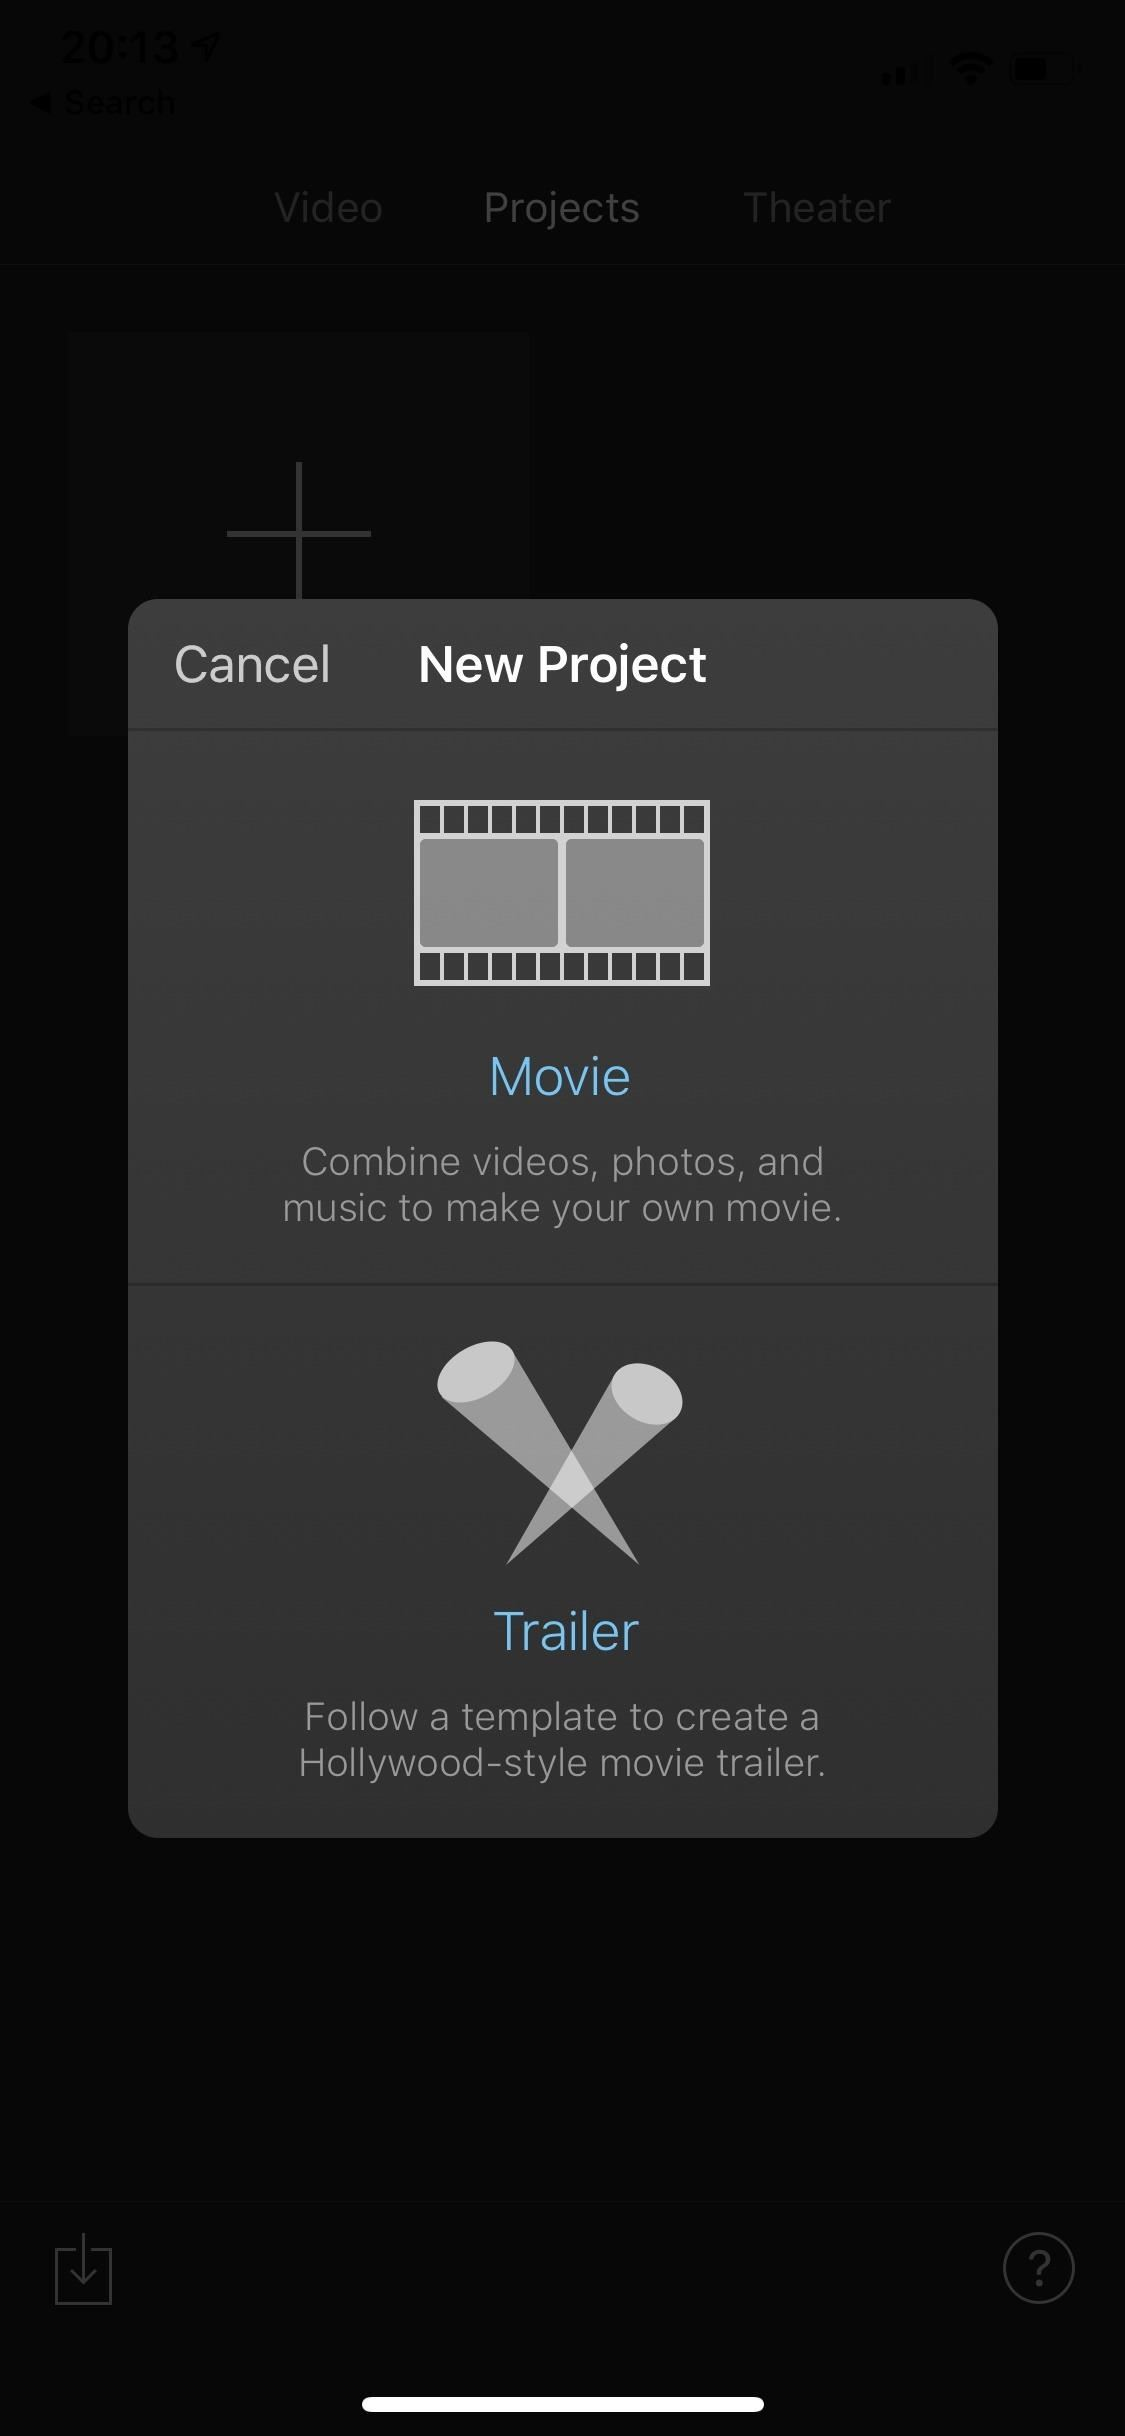 How to Create a New Movie Project in iMovie on Your iPhone